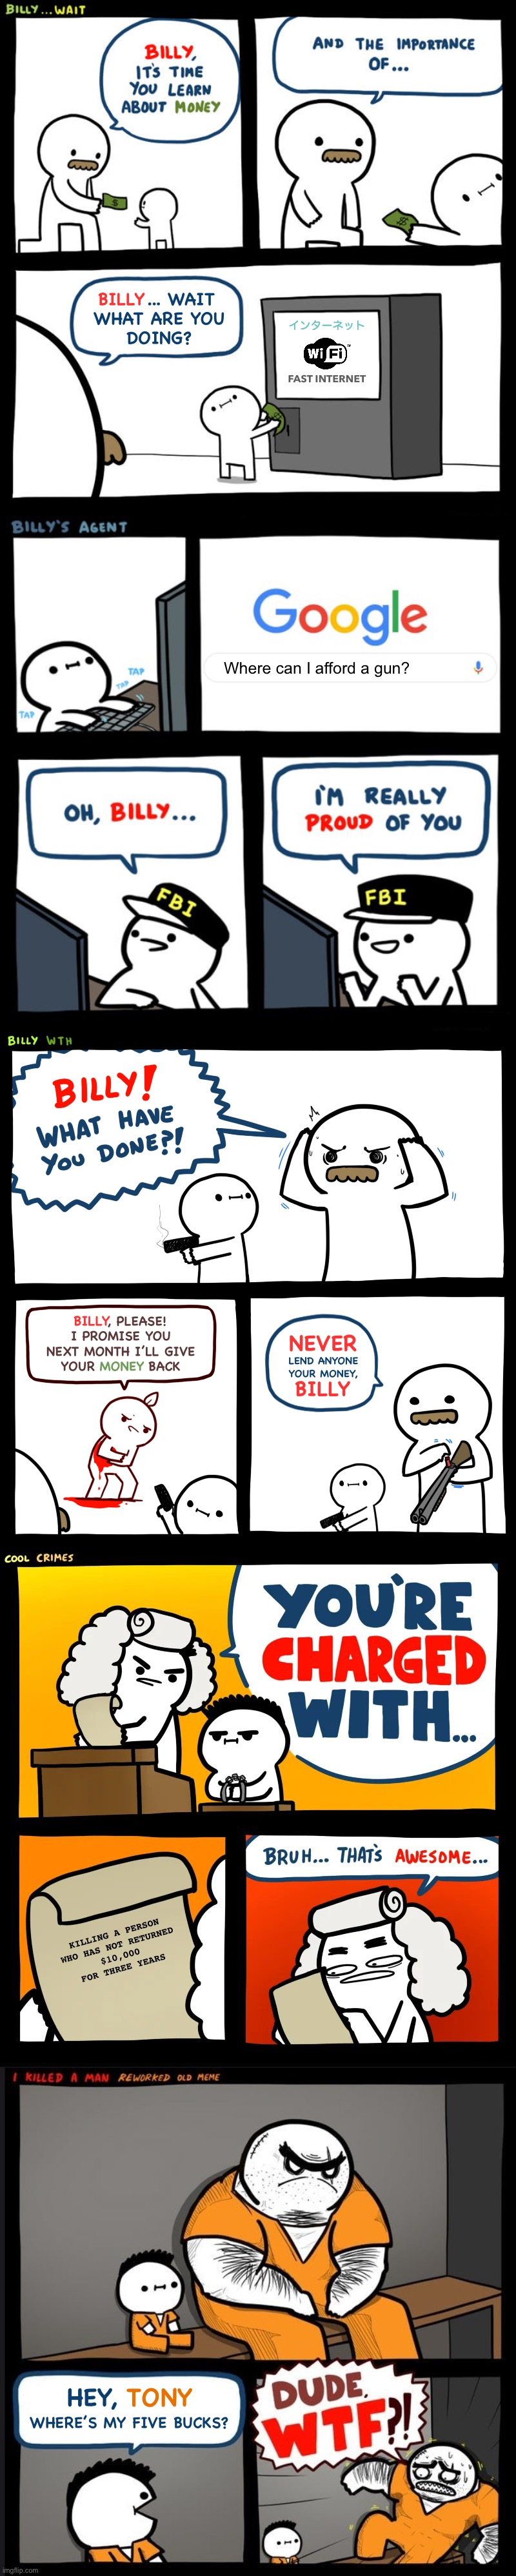 Billy's True Story |  ... WAIT WHAT ARE YOU DOING? BILLY; インターネット; FAST INTERNET; Where can I afford a gun? BILLY; , PLEASE! I PROMISE YOU NEXT MONTH I'LL GIVE YOUR          BACK; NEVER; MONEY; LEND ANYONE YOUR MONEY, BILLY; KILLING A PERSON WHO HAS NOT RETURNED $10,000 FOR THREE YEARS; HEY, TONY; WHERE'S MY FIVE BUCKS? | image tagged in billy wait,billy's fbi agent,billy what have you done,cool crimes,srgrafo dude wtf,billy's true story | made w/ Imgflip meme maker